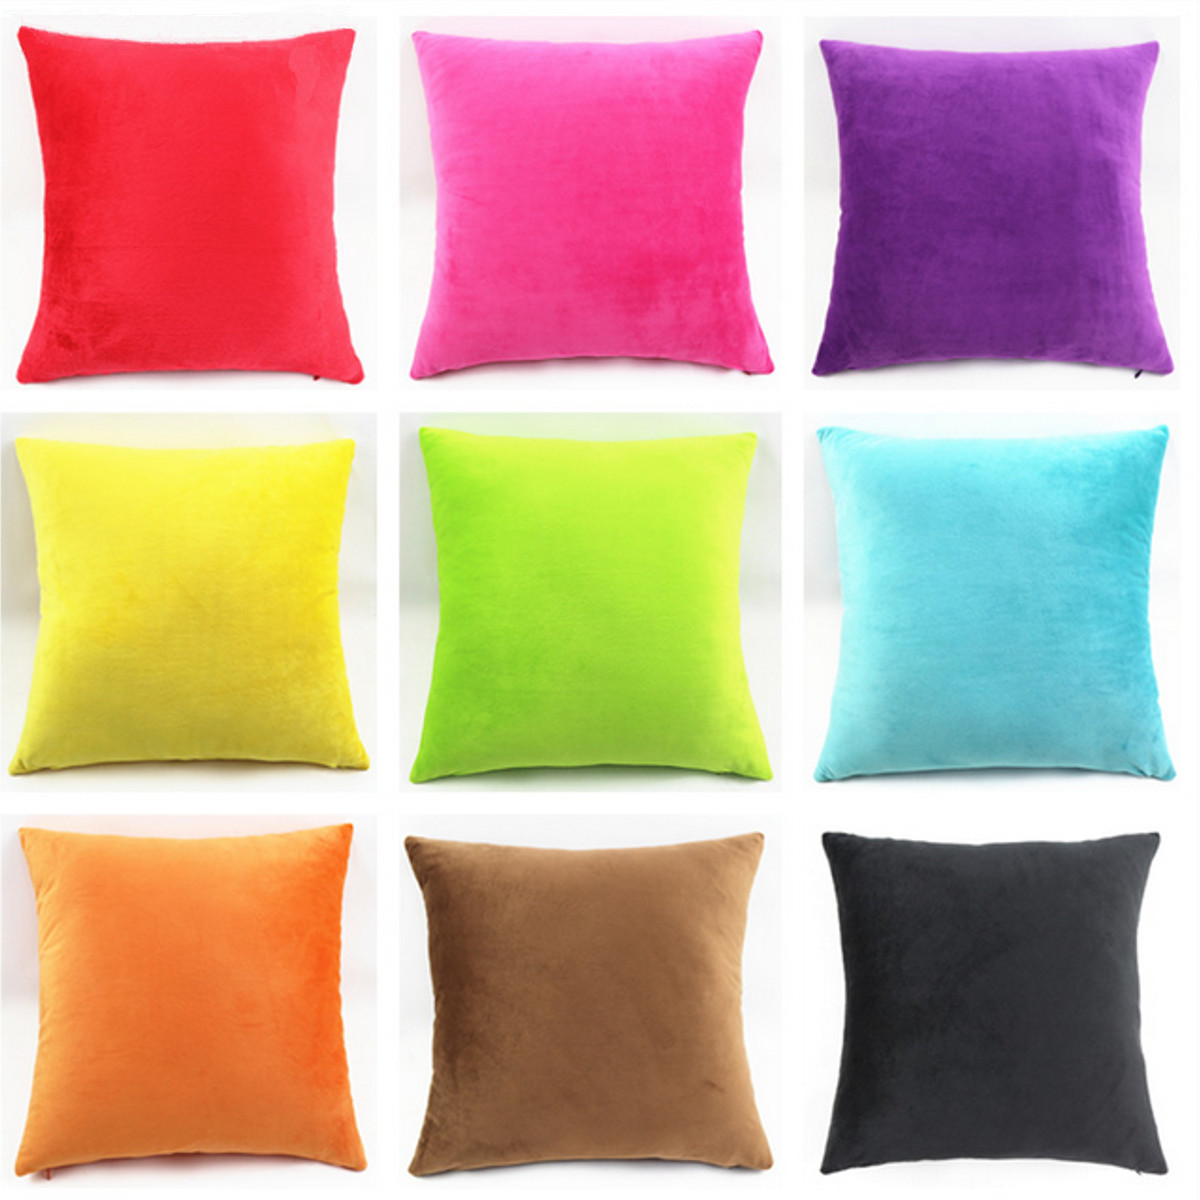 Meigar Pure Color Linen Cotton Throw Pillow Cushion Cover Clearance Square Shaped Standard Decorative Pillowslip Pillowcase Protector Case for Sofa Couch Chair Car Seat Decor